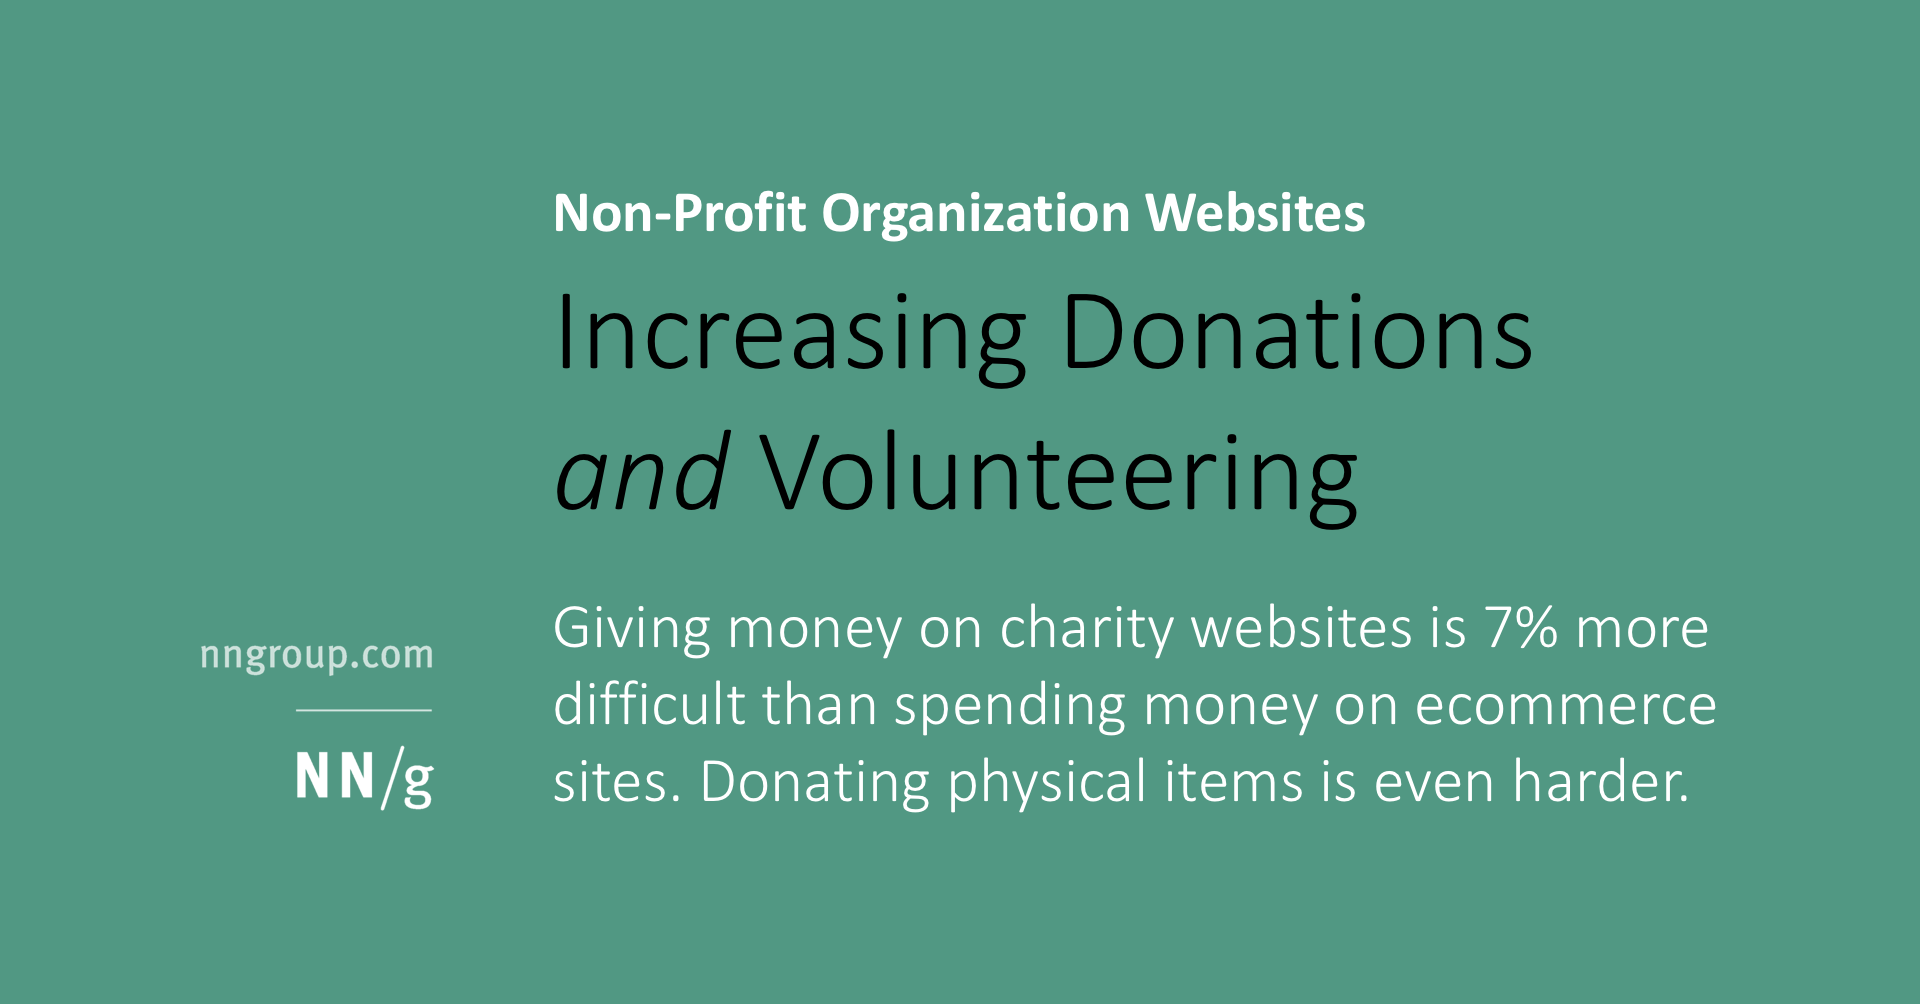 Test Donation Characters to get a Charitable Organization